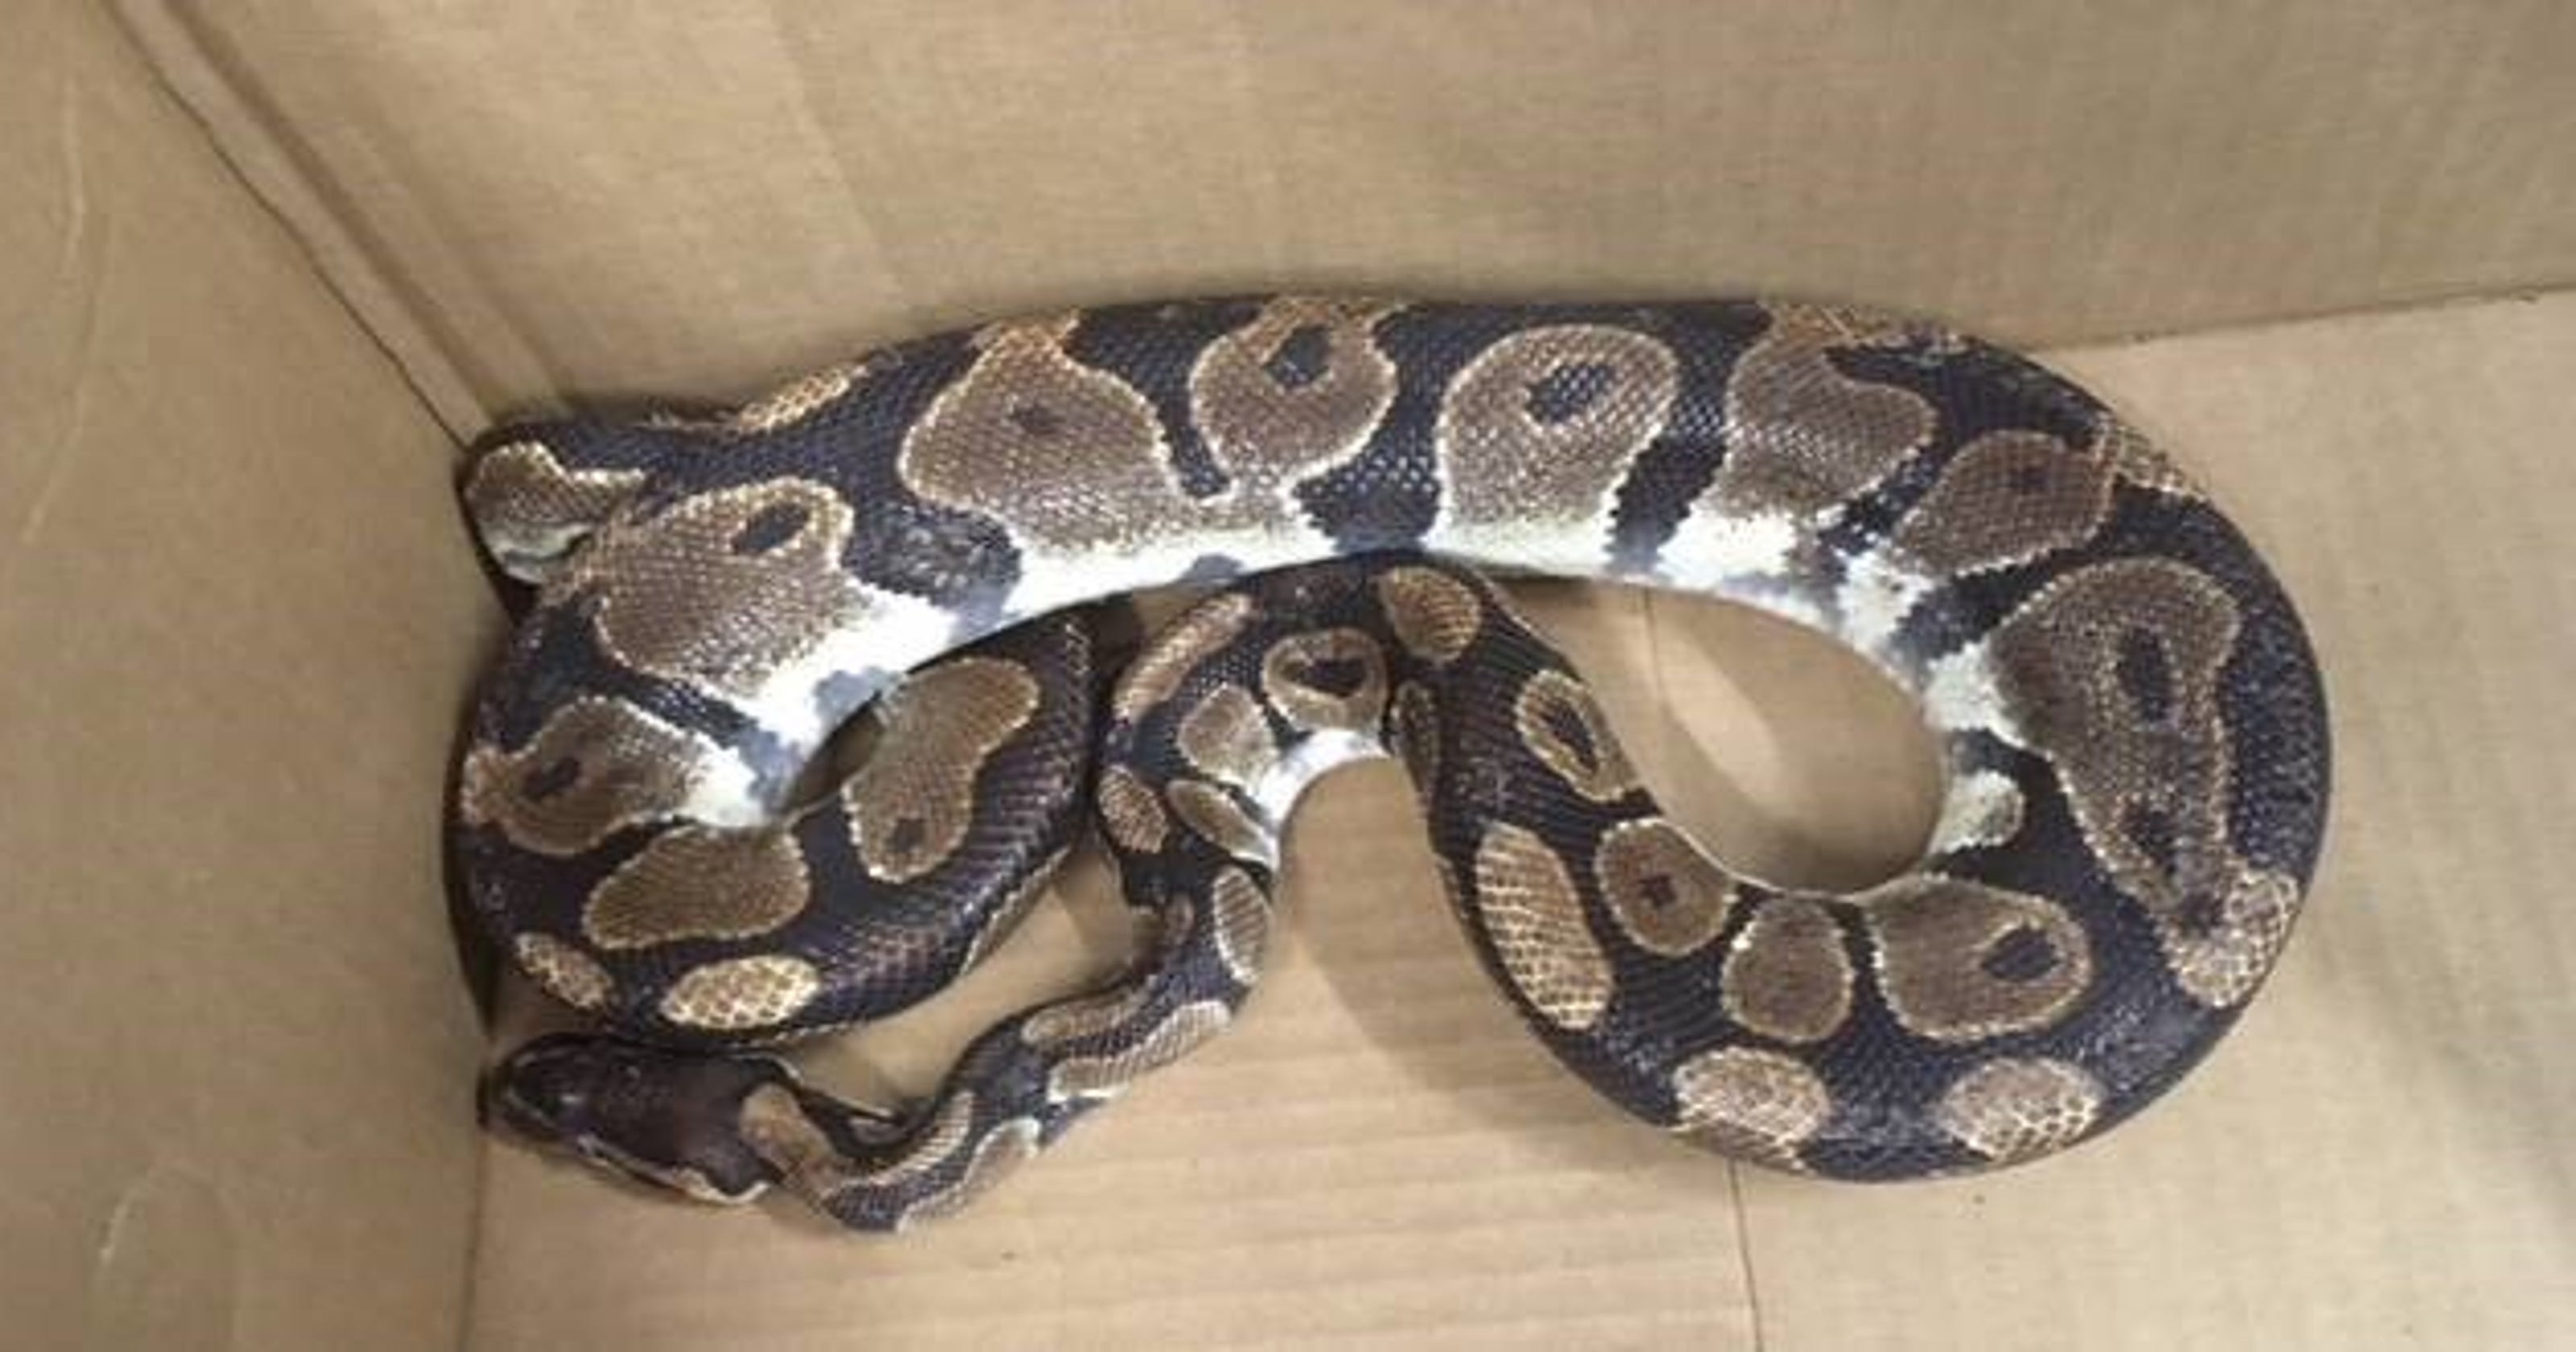 Surprise resident recycles 6-foot python